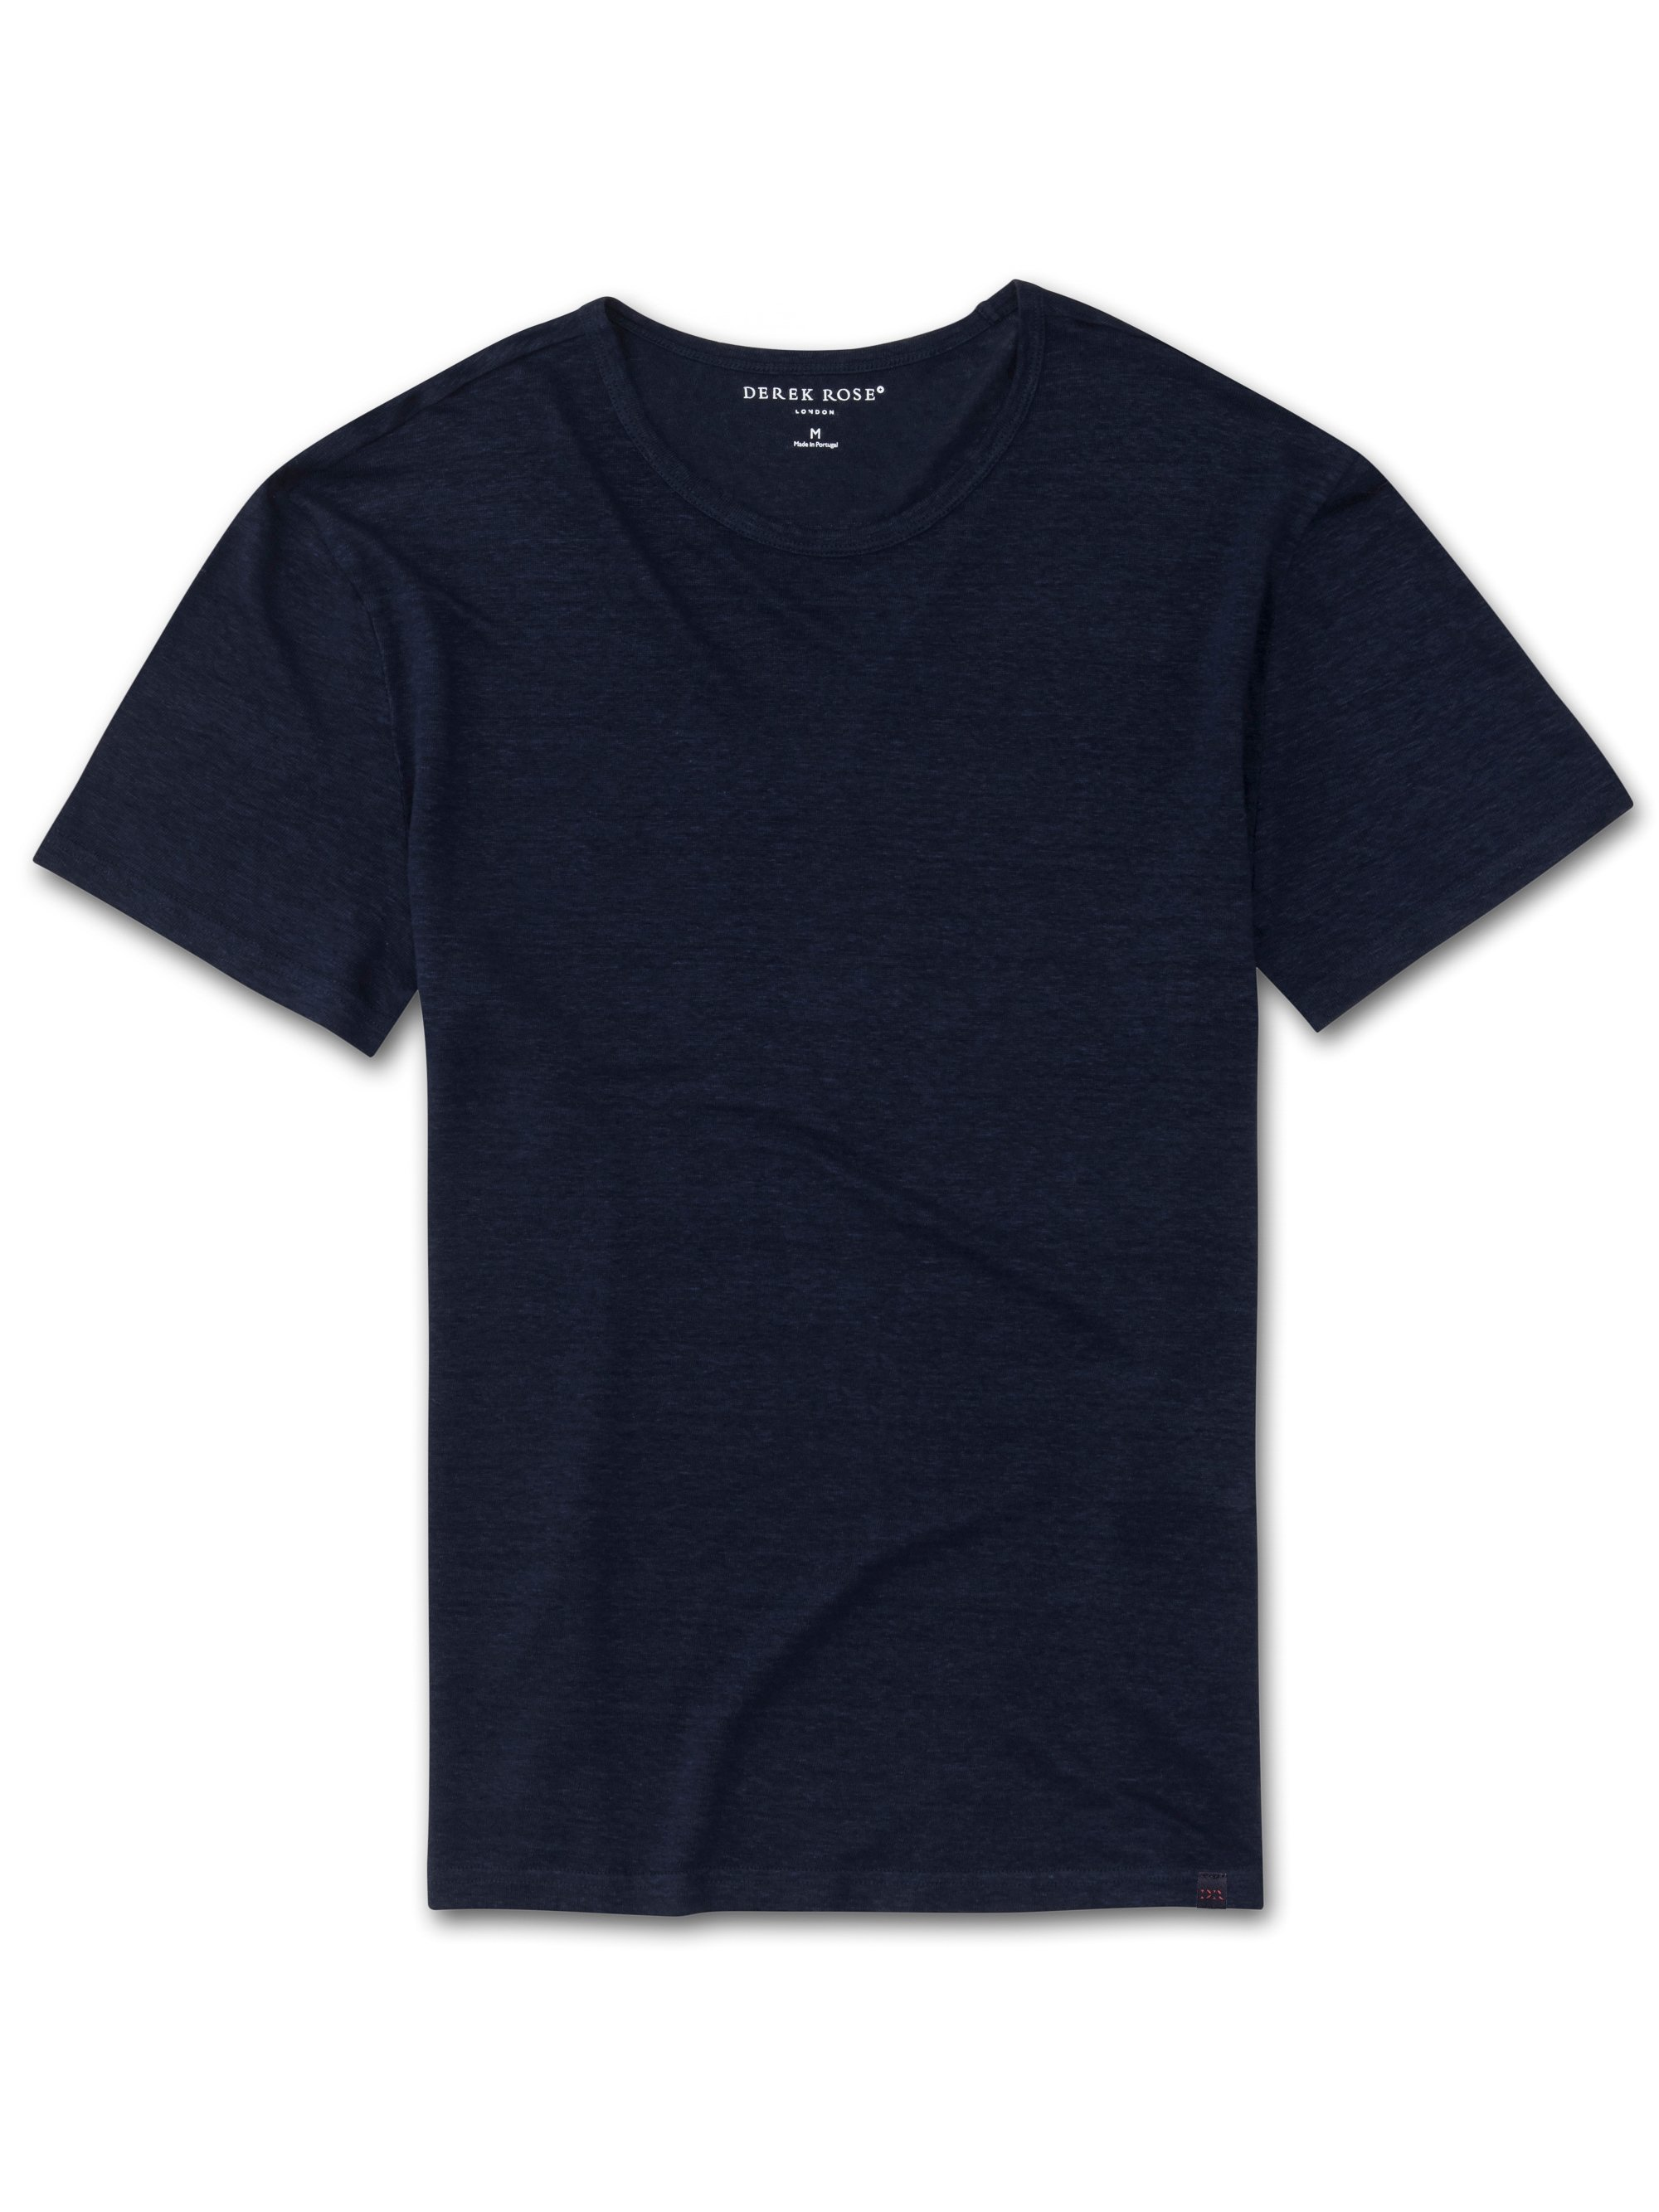 Men's Linen Short Sleeve T-Shirt Jordan Pure Linen Navy